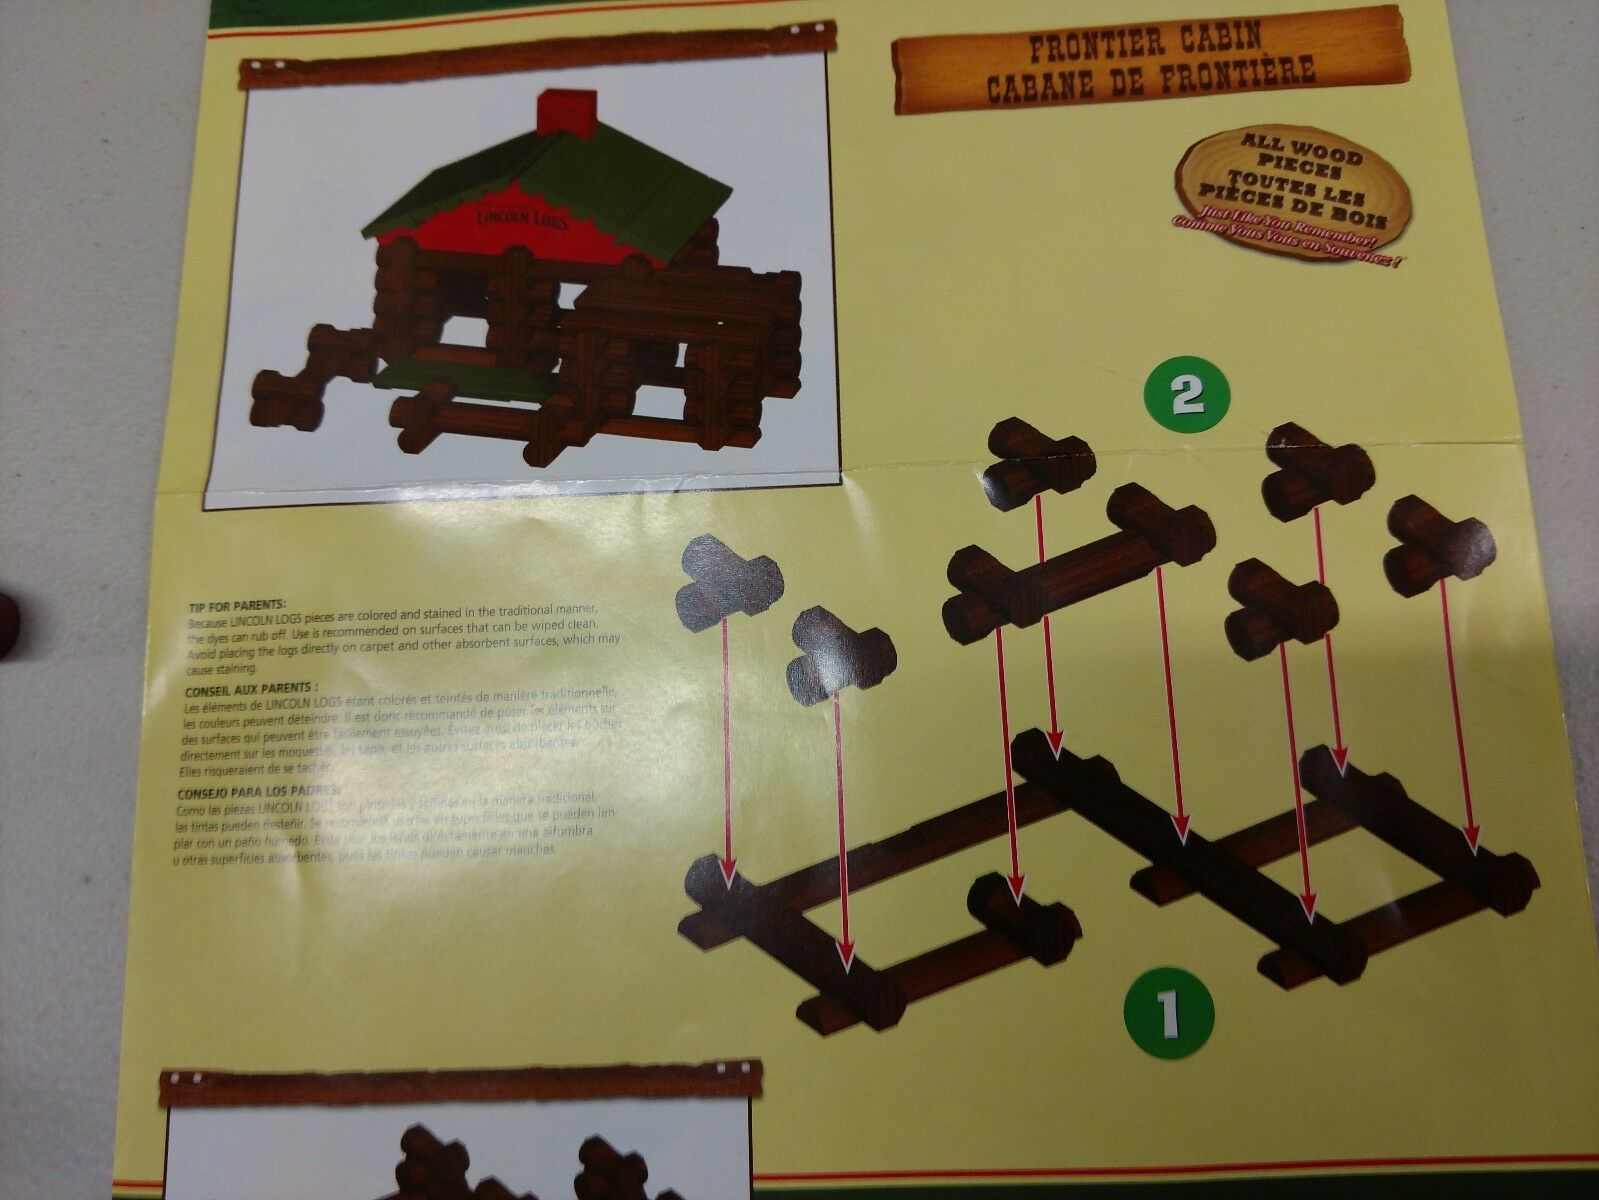 THE THE THE ORIGINAL LINCOLN LOGS CLASSIC EDITION FRONTIER CABIN 86PC cf4f36